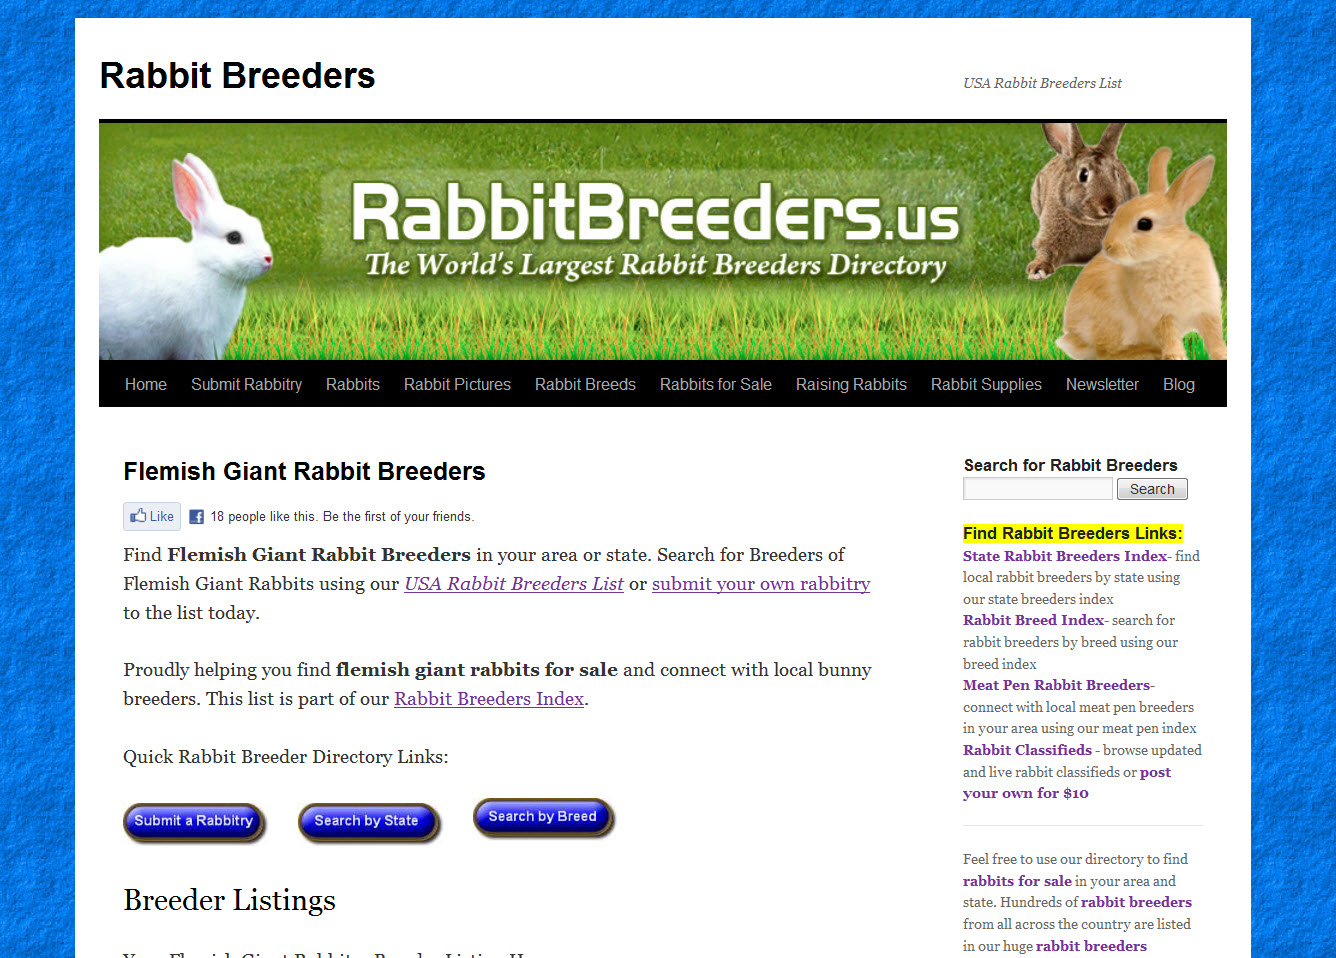 Flemish Giant Rabbit Breeders